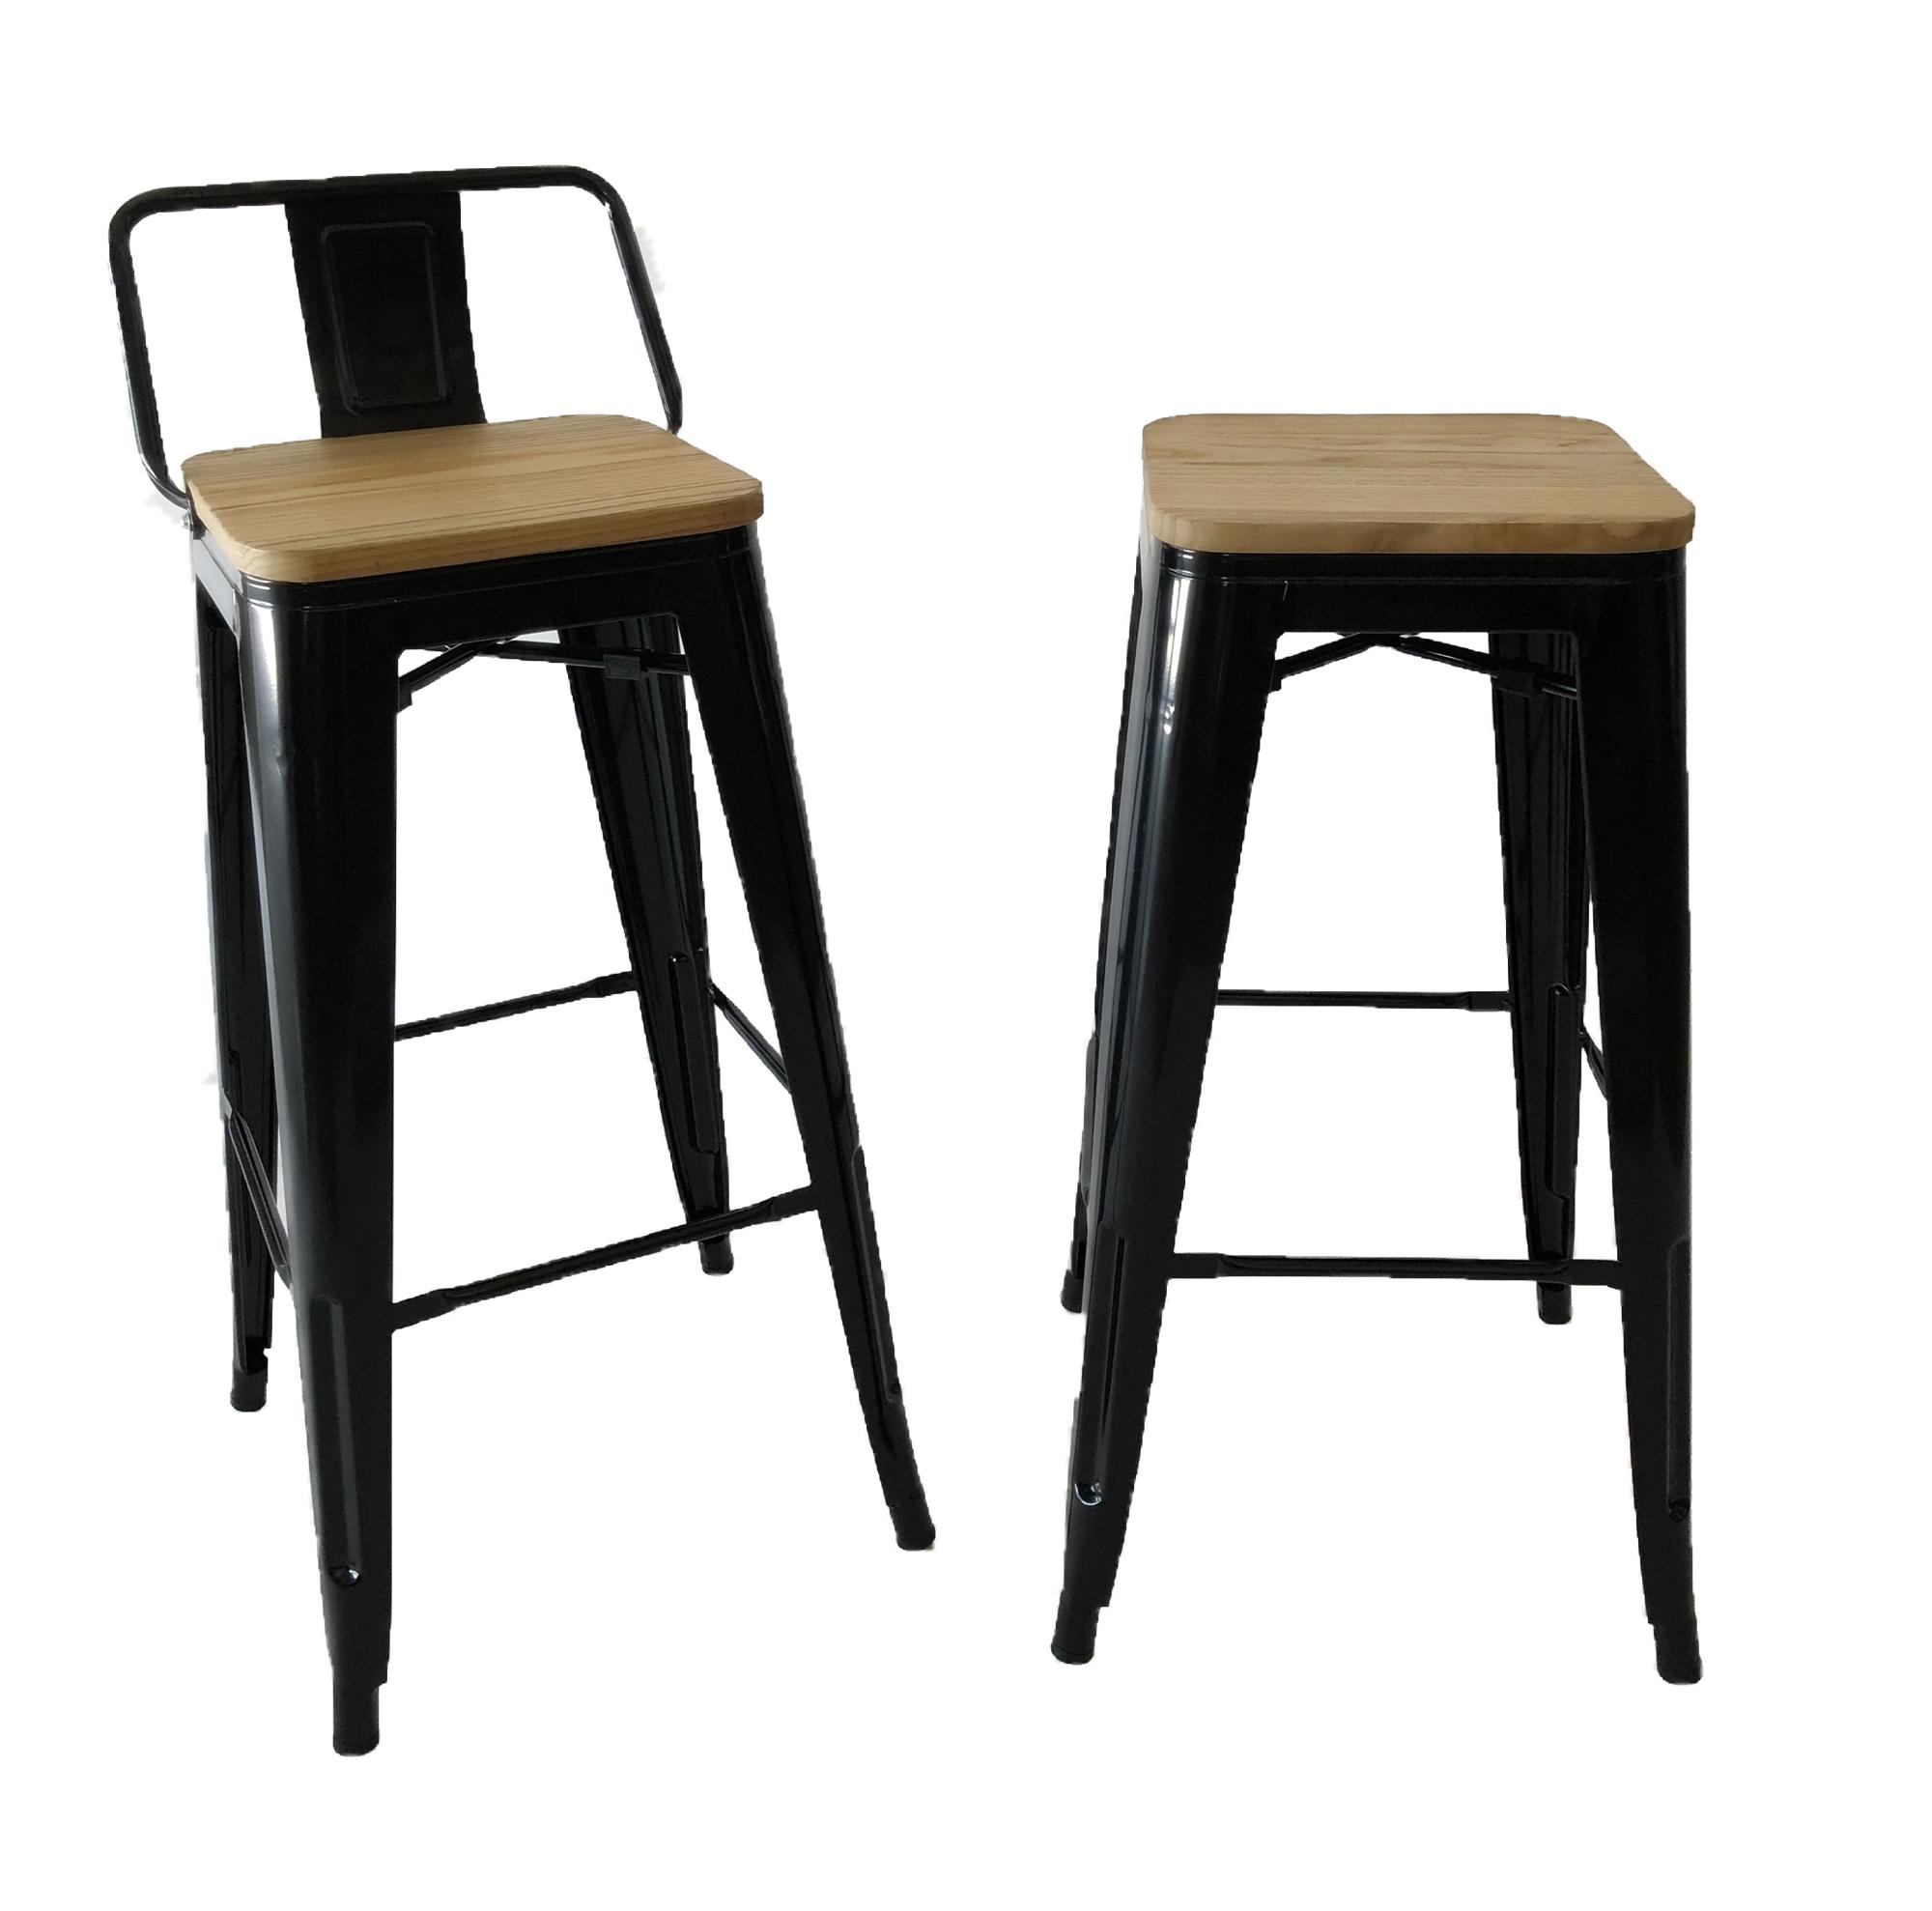 High Bar Stool with Metal Leg / Industrial Look